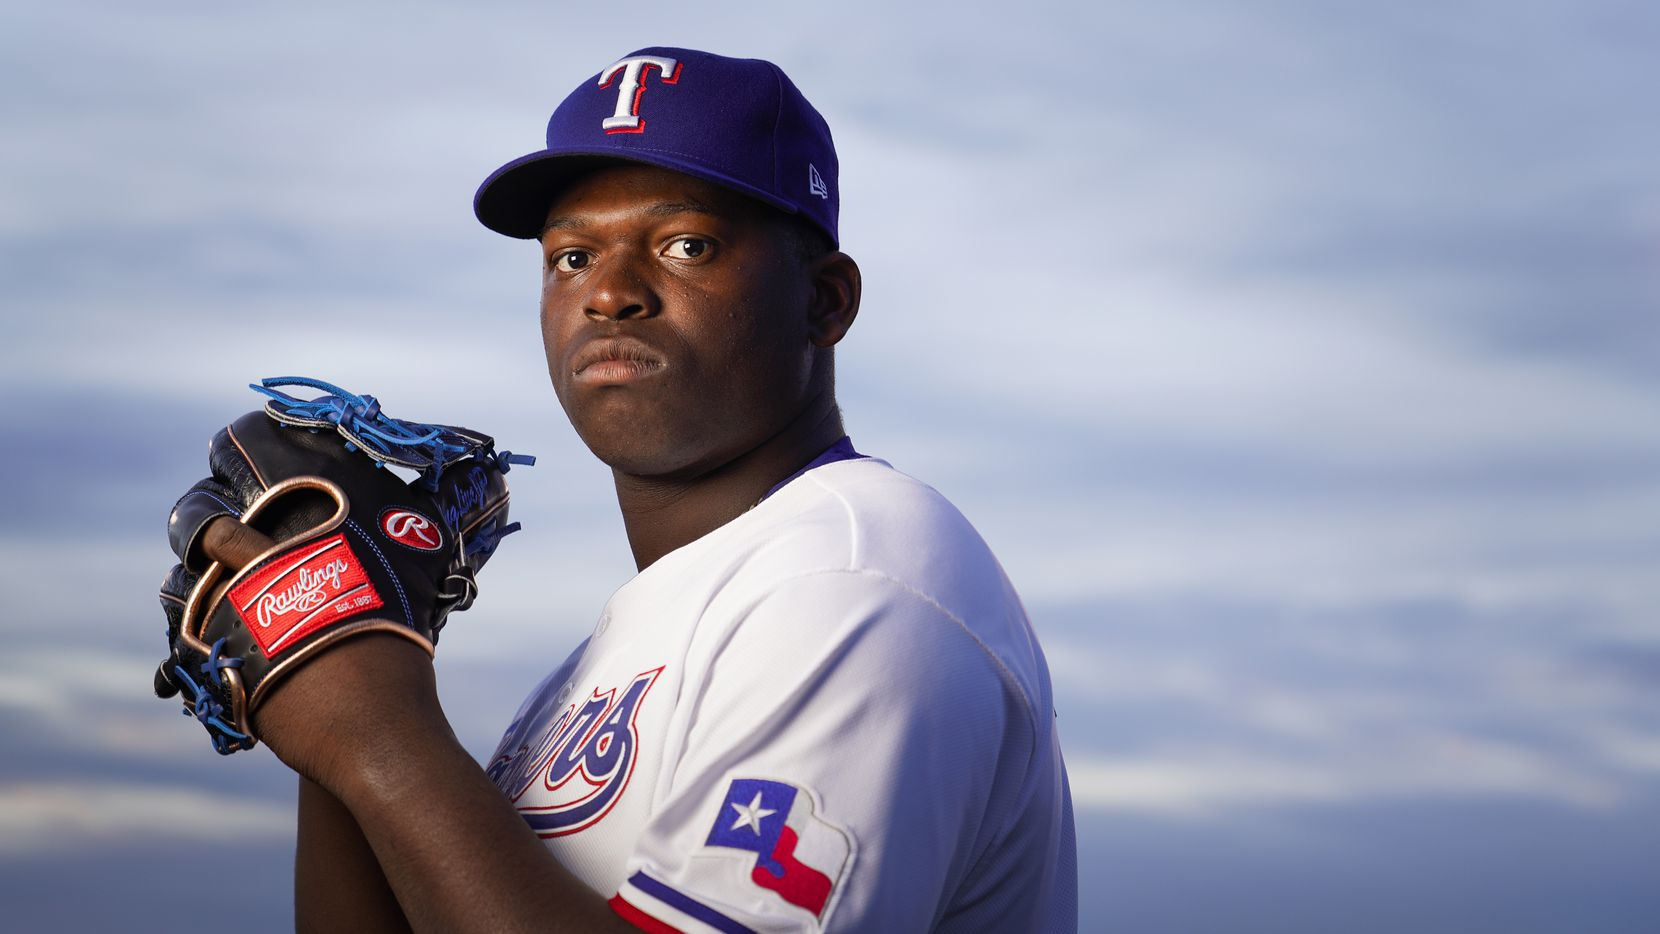 Texas Rangers pitcher Demarcus Evans pictured during photo day at the team's spring training facility on Wednesday, Feb. 19, 2020, in Surprise, Ariz. (Smiley N. Pool/The Dallas Morning News)